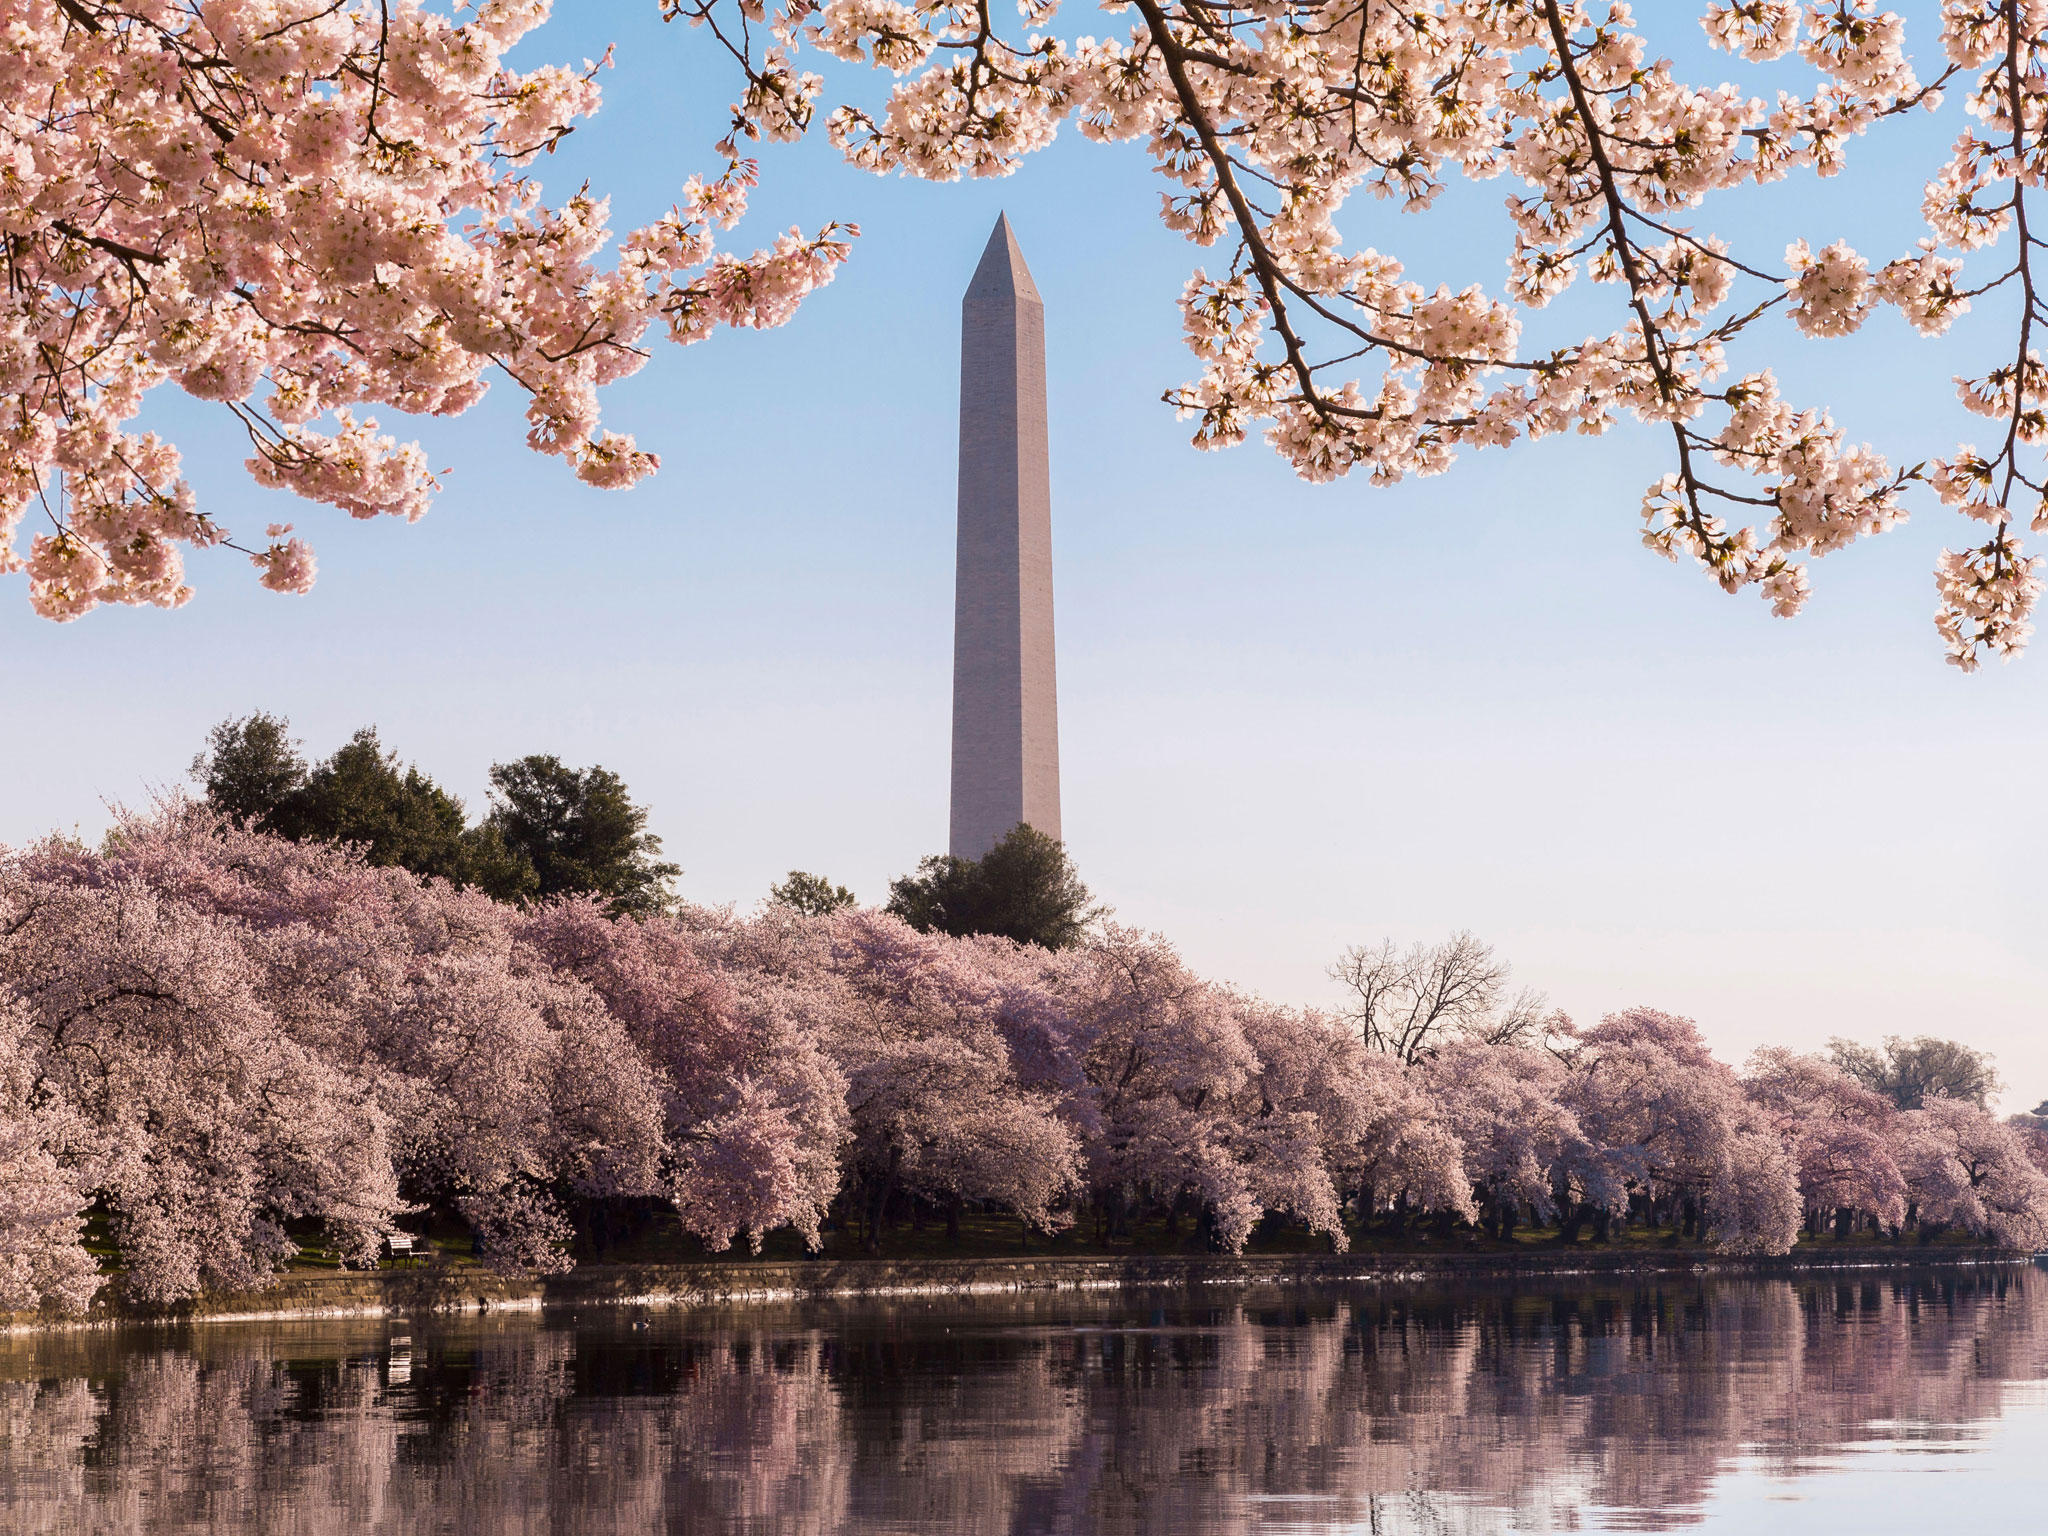 From $106 Visit National Cherry Blossom festival in Washington DC. @ Hilton Hotels